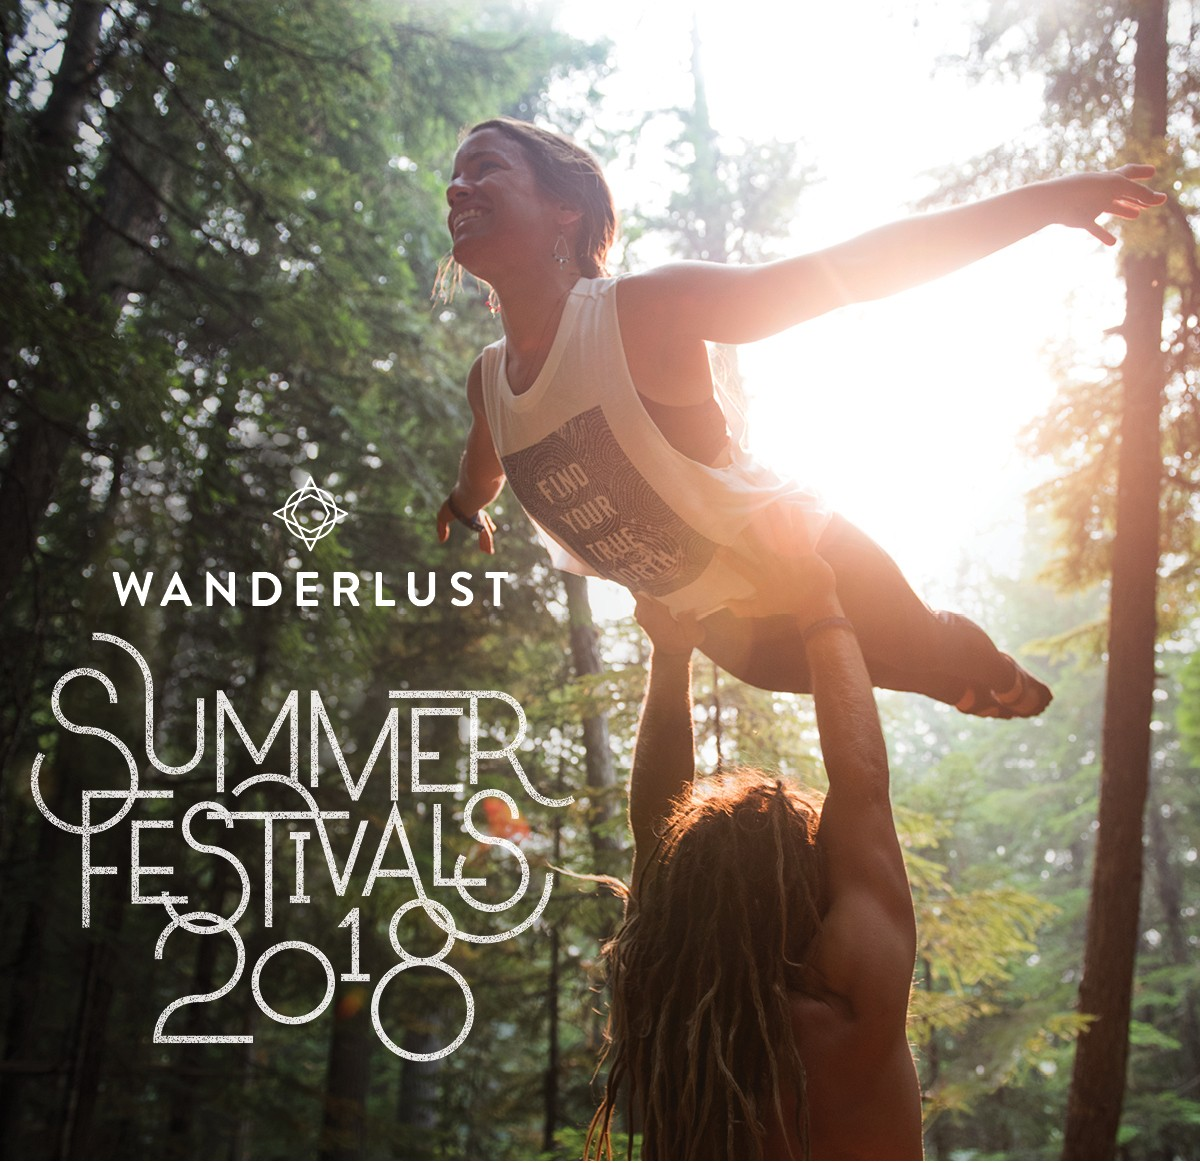 Wanderlust-yoga-festival-whistler-squaw-valley-discount-special-offer-Haven-yoga-and-wellness-Summer-Festival-Lineup-Dedicated-Announcement-Email-Header.jpg